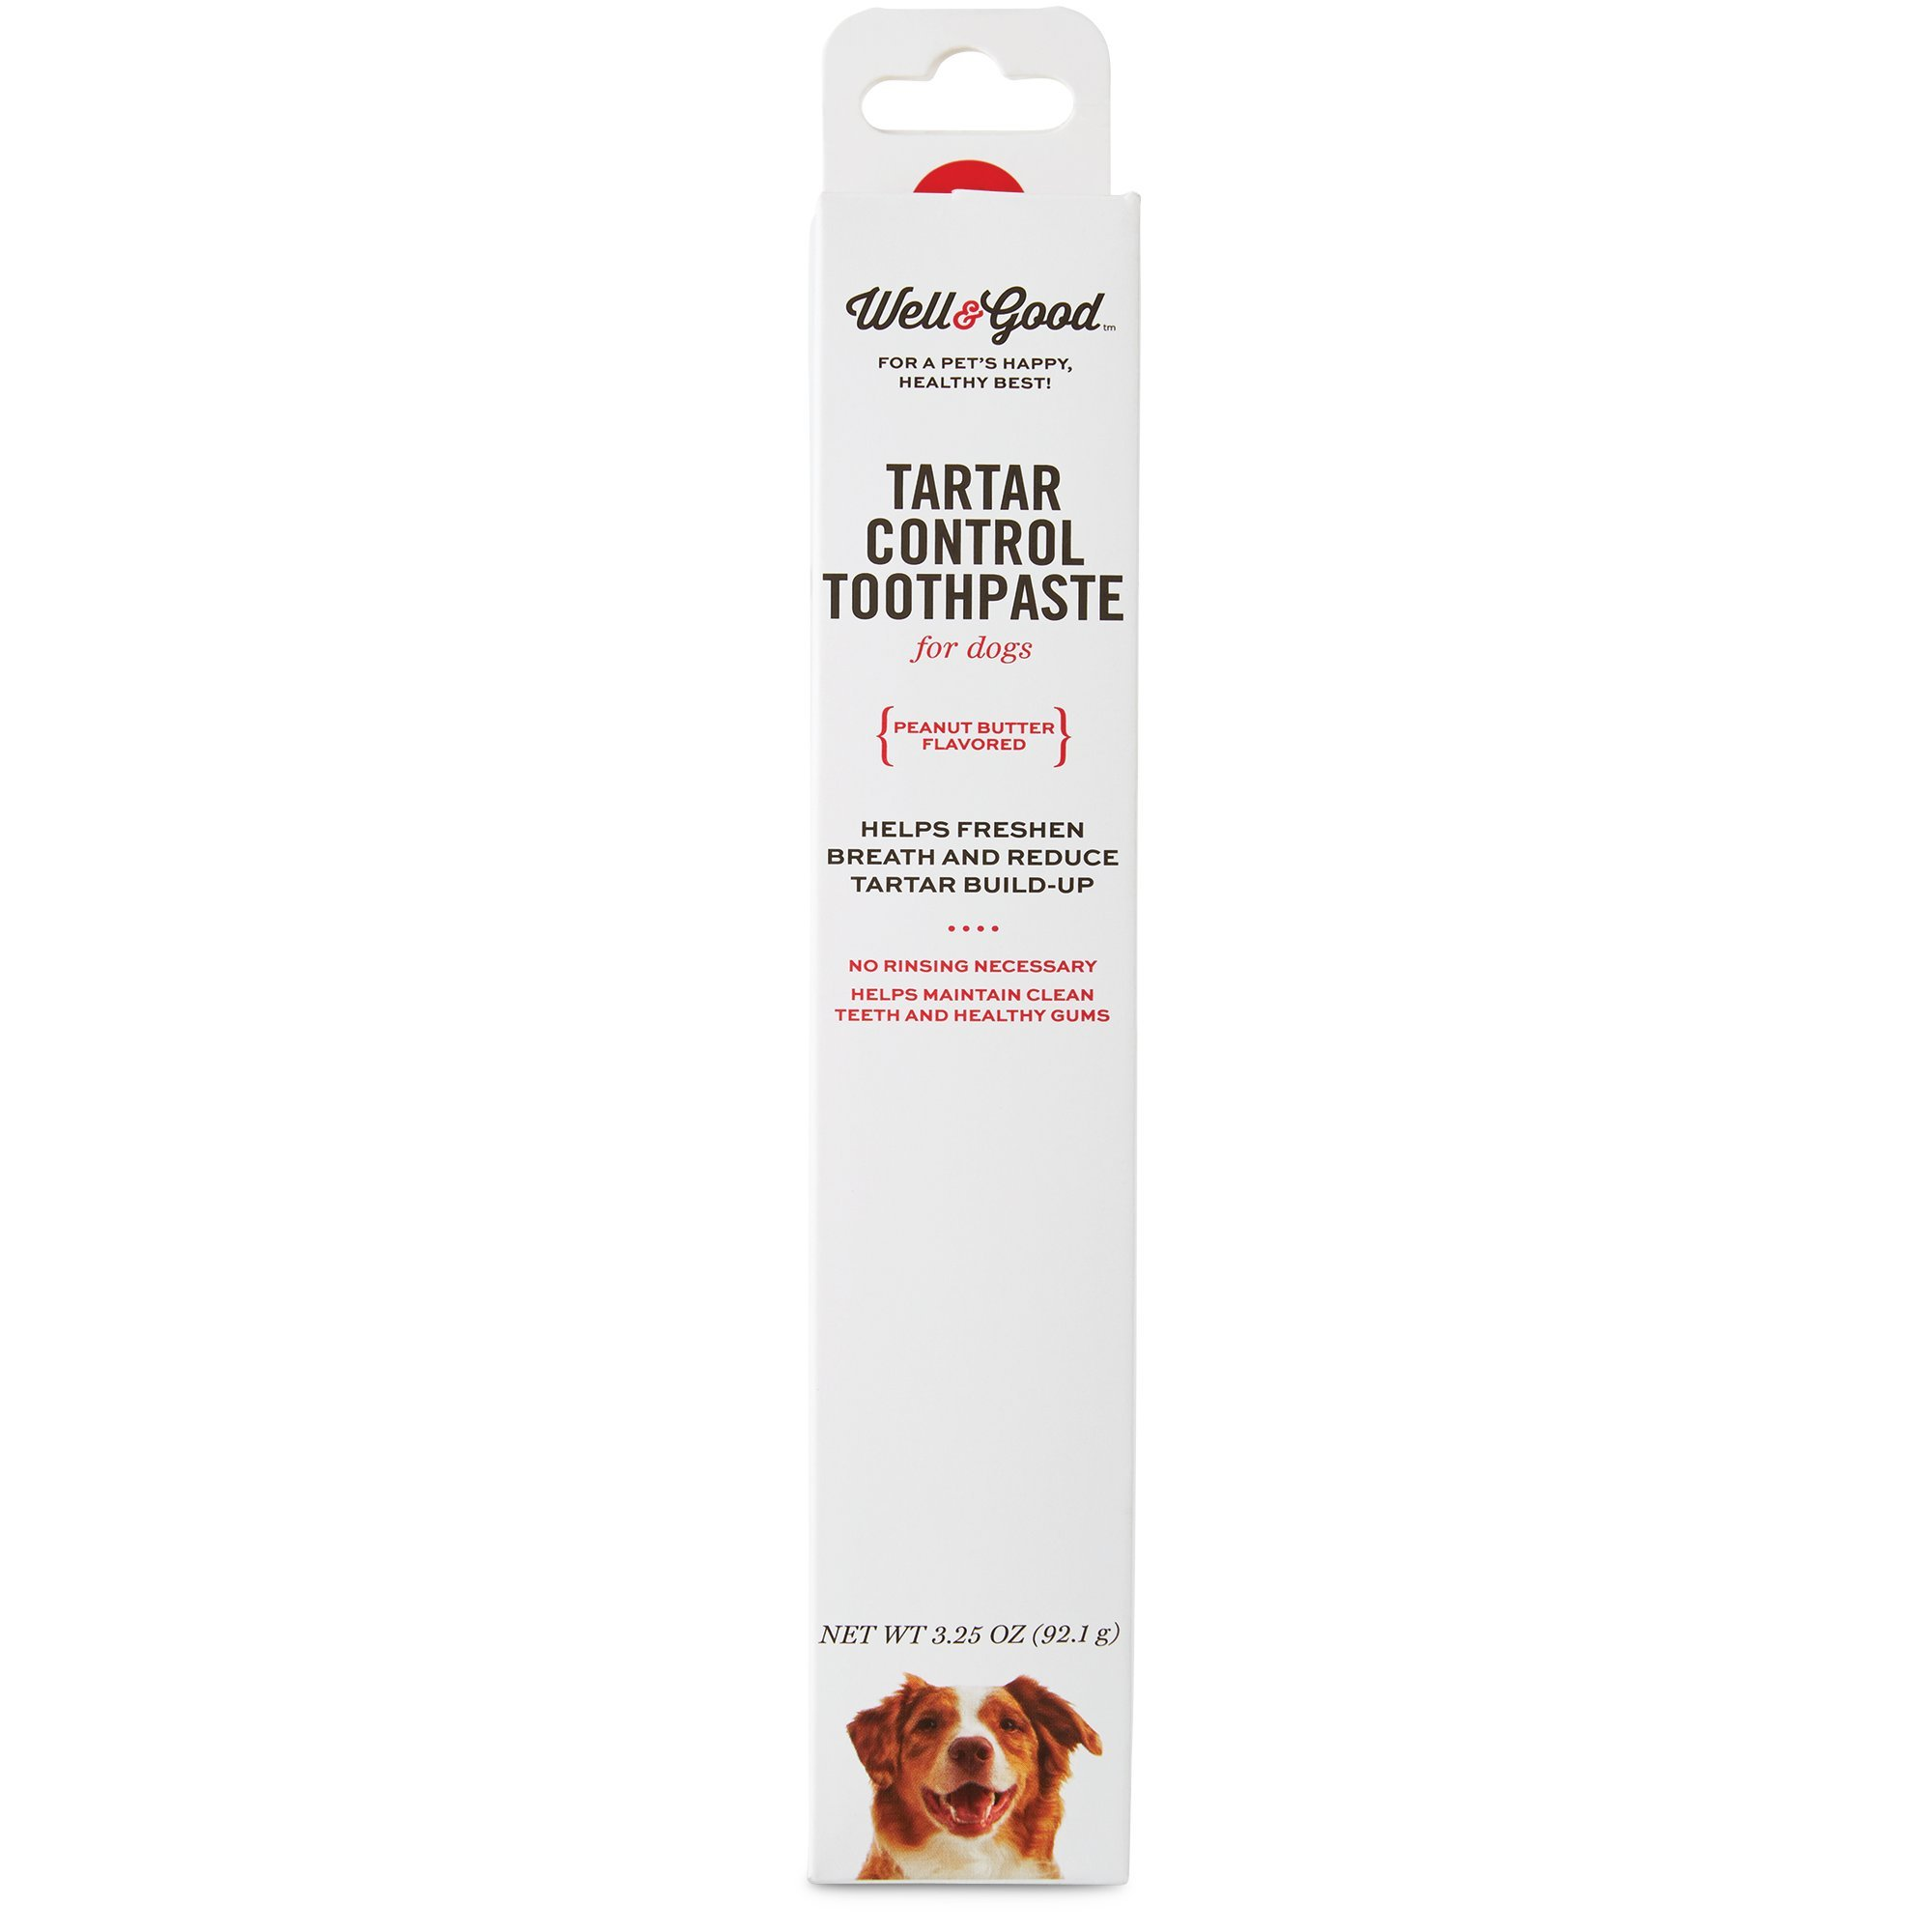 Well & Good Tartar Control Toothpaste for Dogs, Peanut Butter Flavor, 3.25 oz. by Well & Good